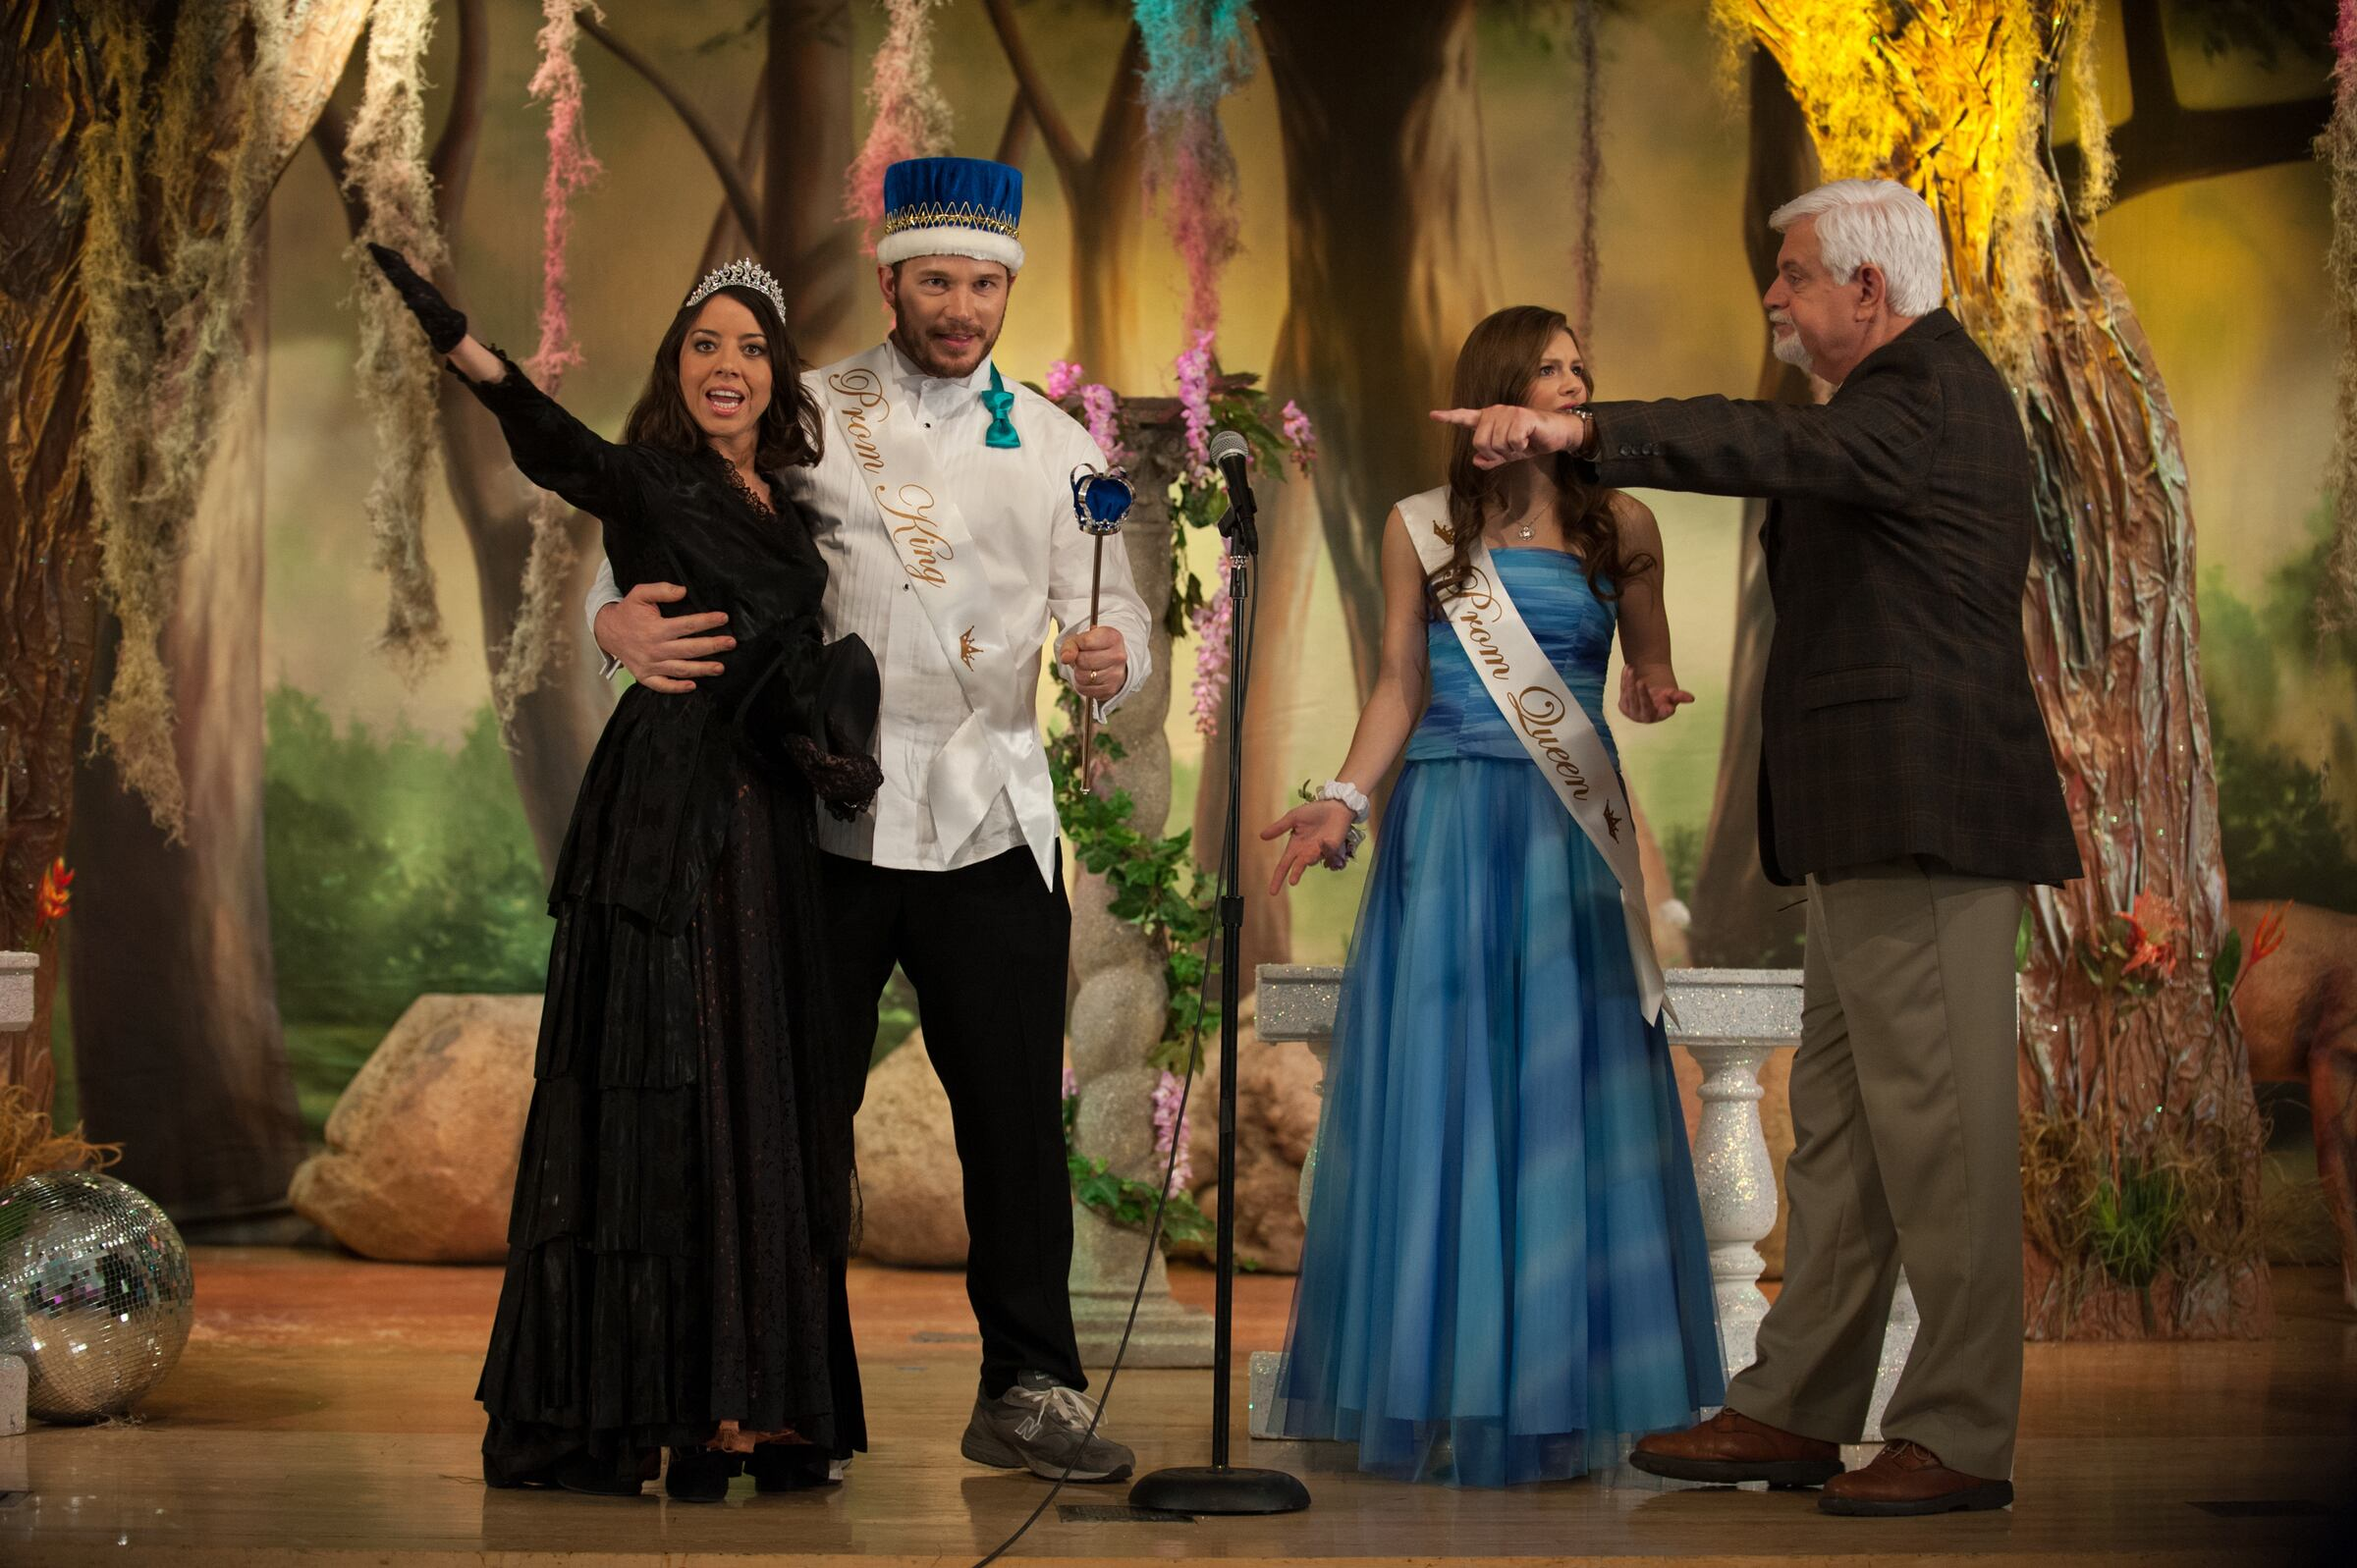 Parks and Recreation - Episode 617 - Prom